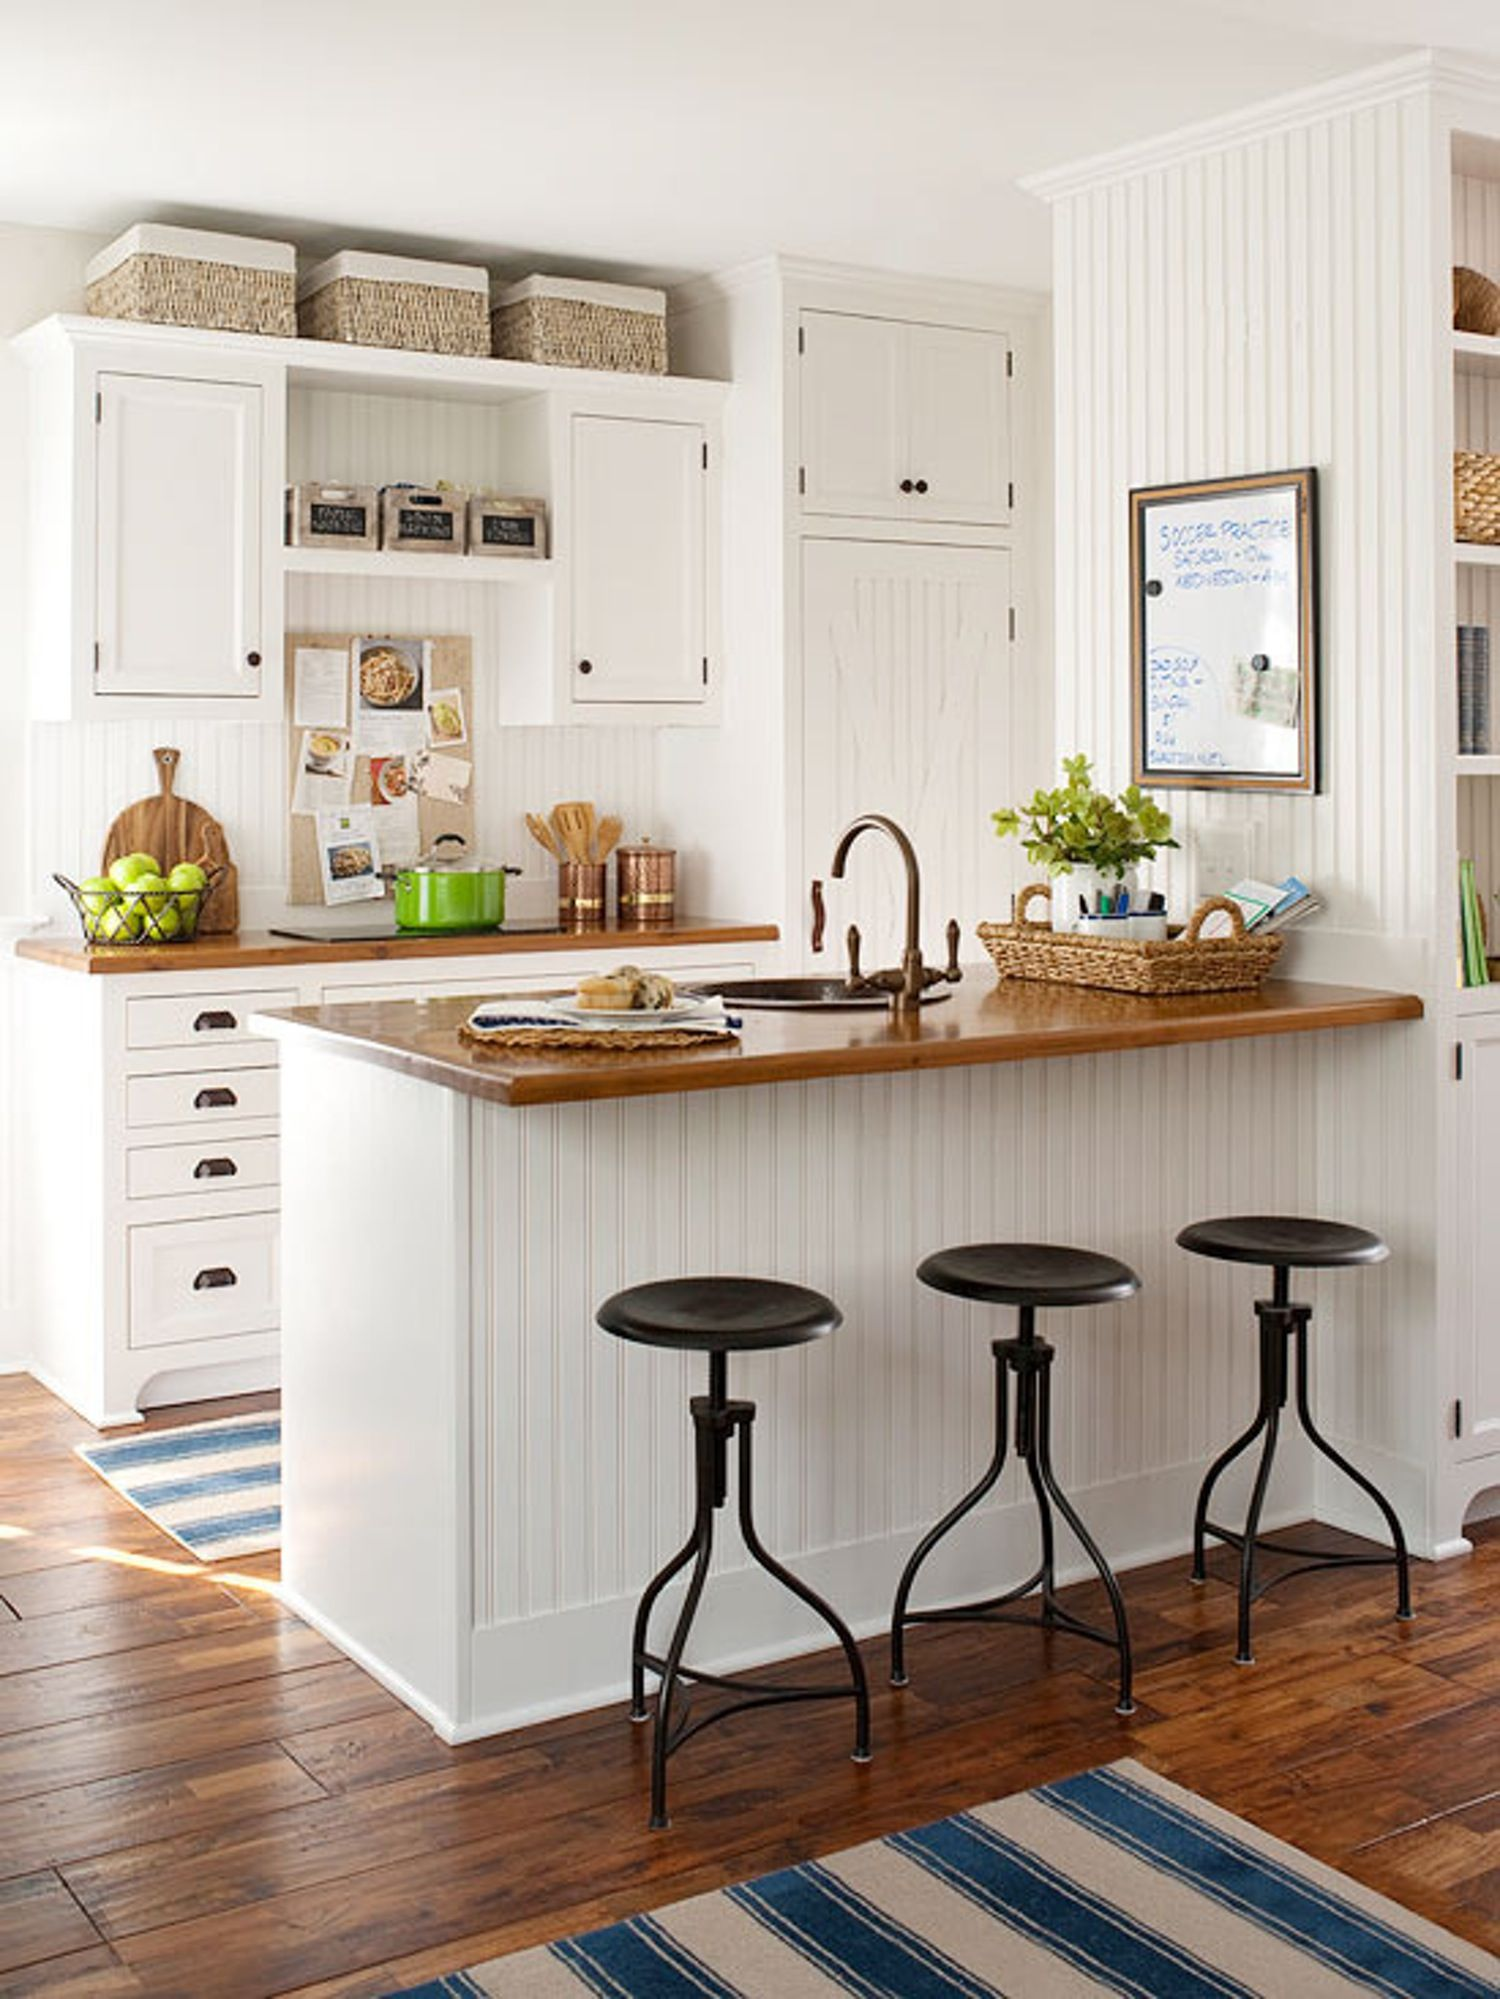 7 Things to Do with That Awkward Space the Cabinets